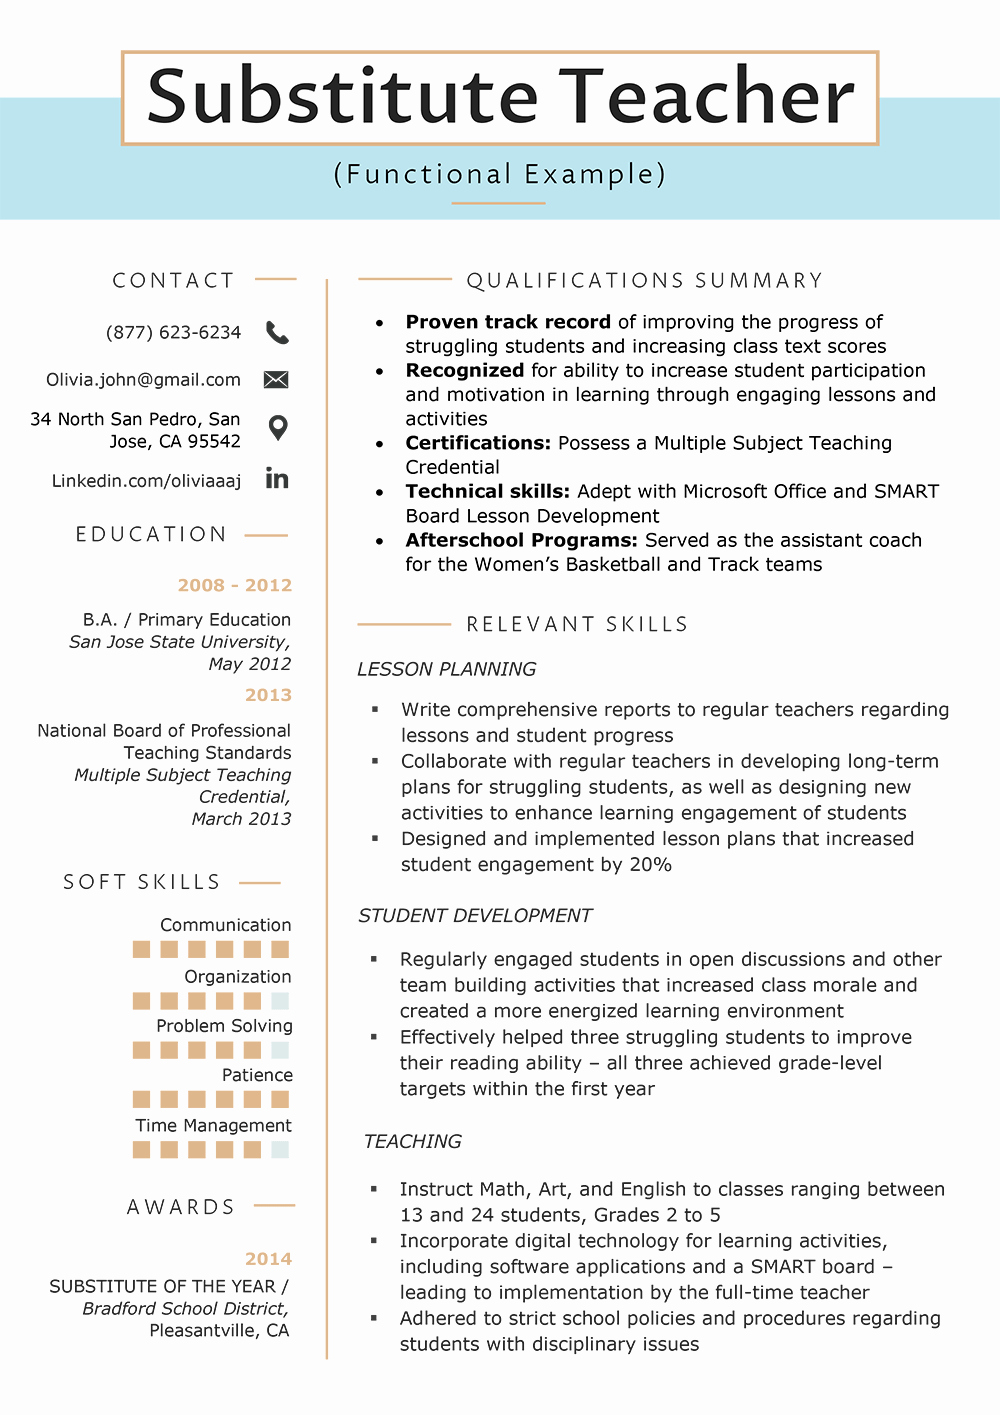 Example Of Functional Resume New the Functional Resume Template Examples & Writing Guide